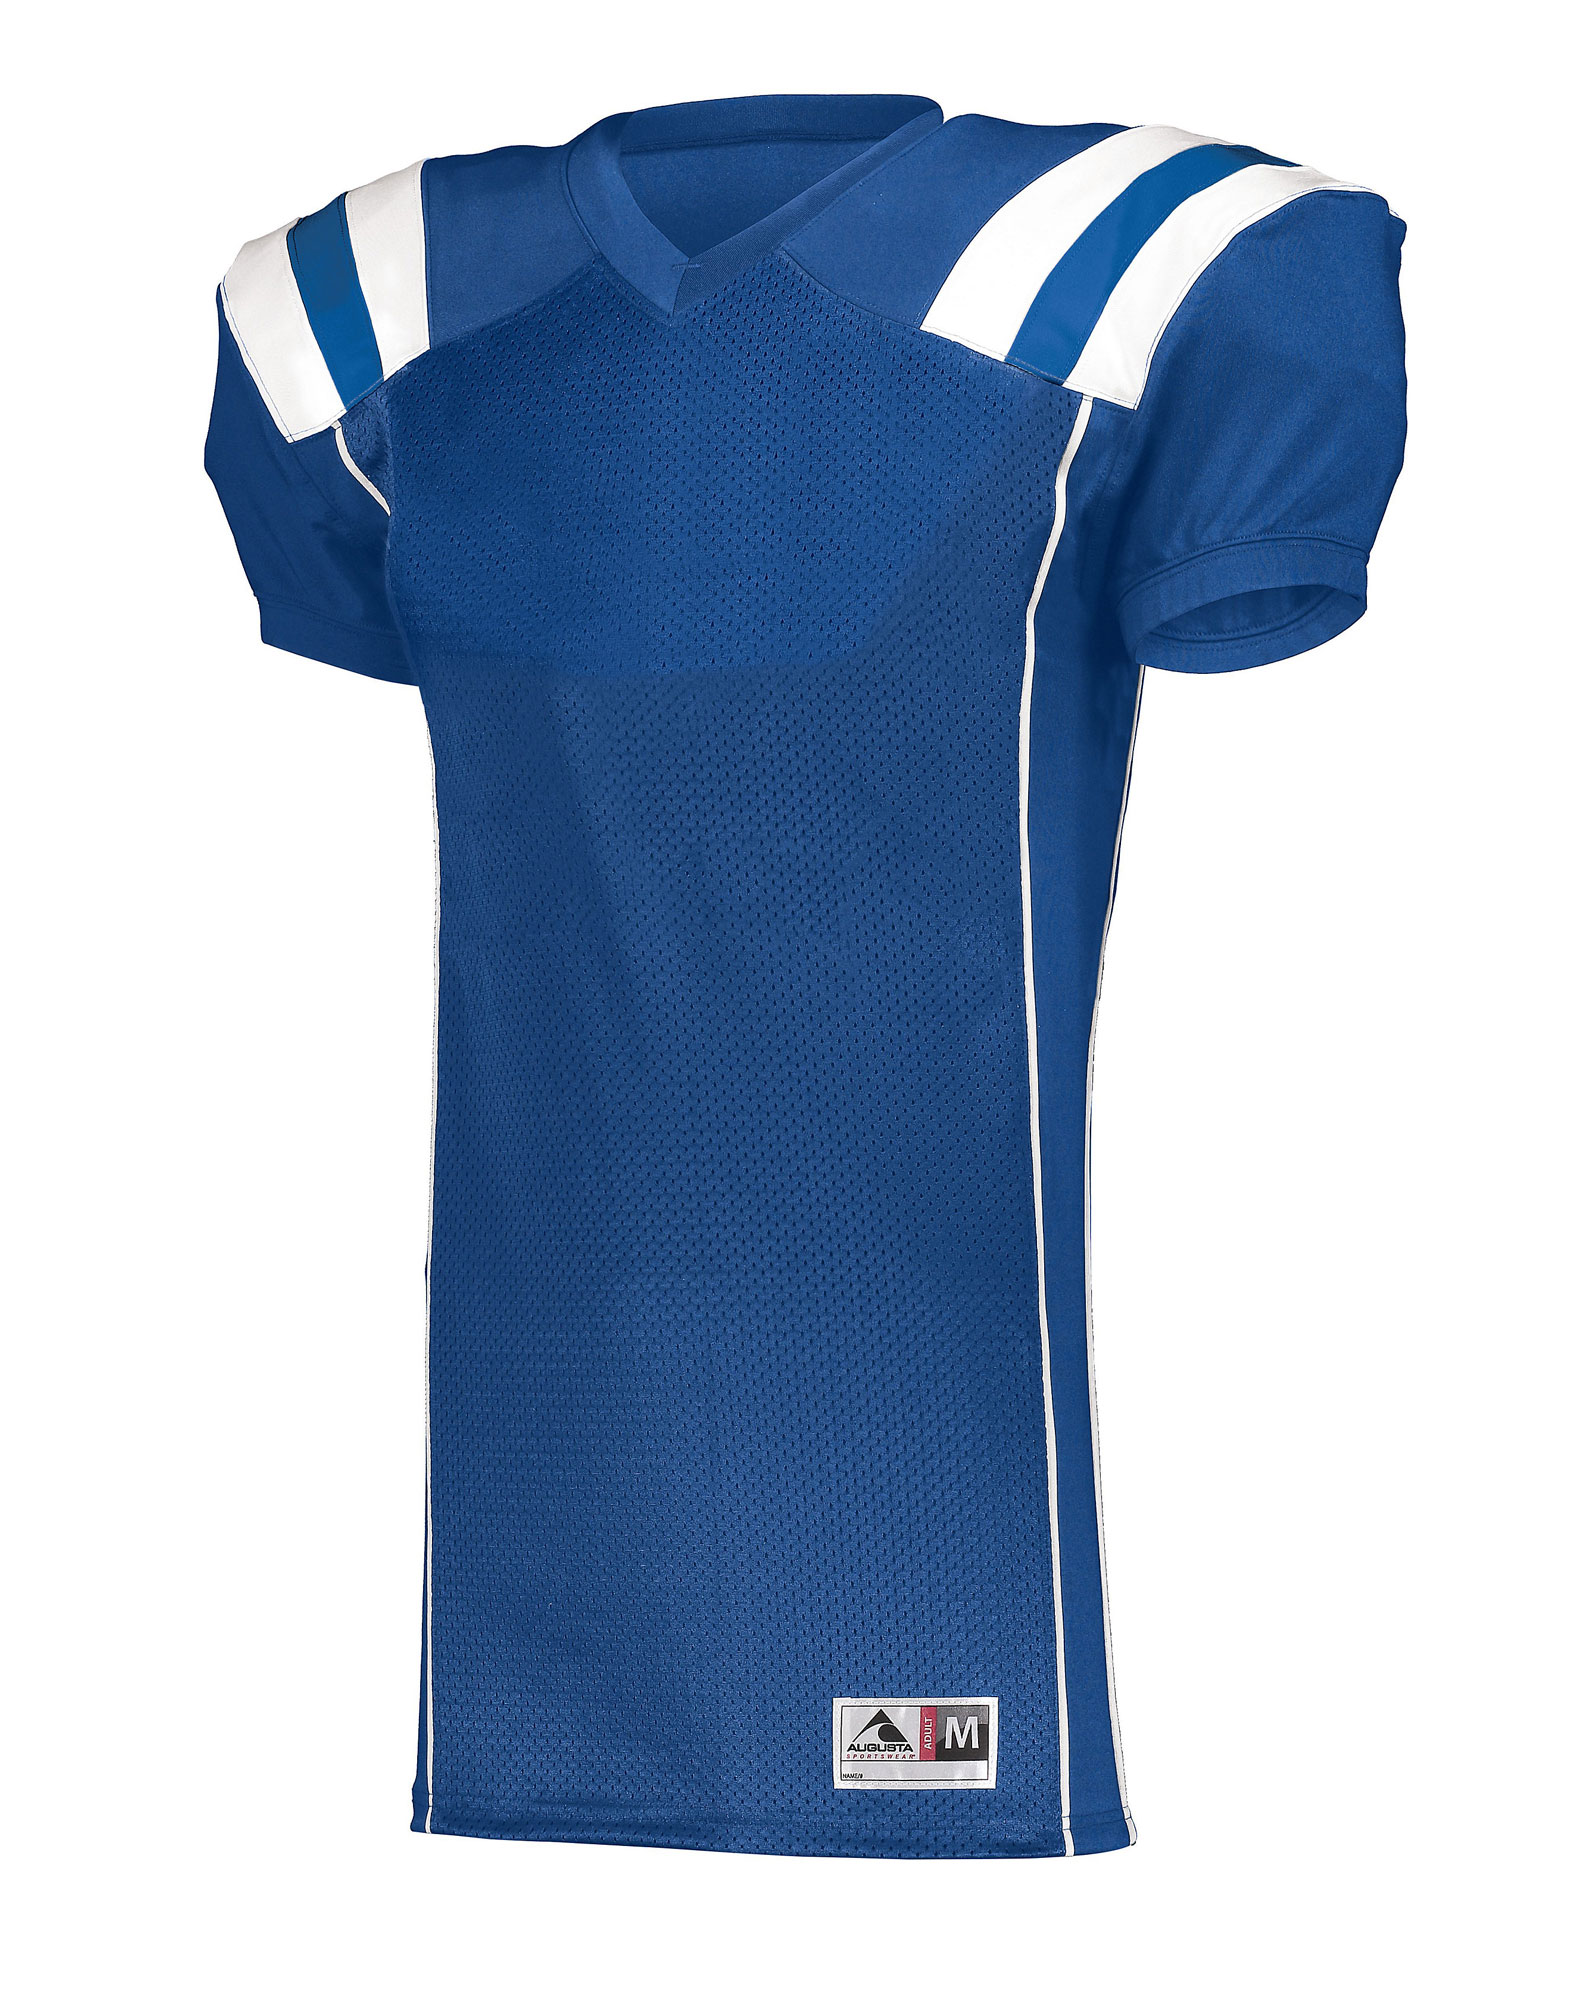 Augusta Adult TForm Football Jersey